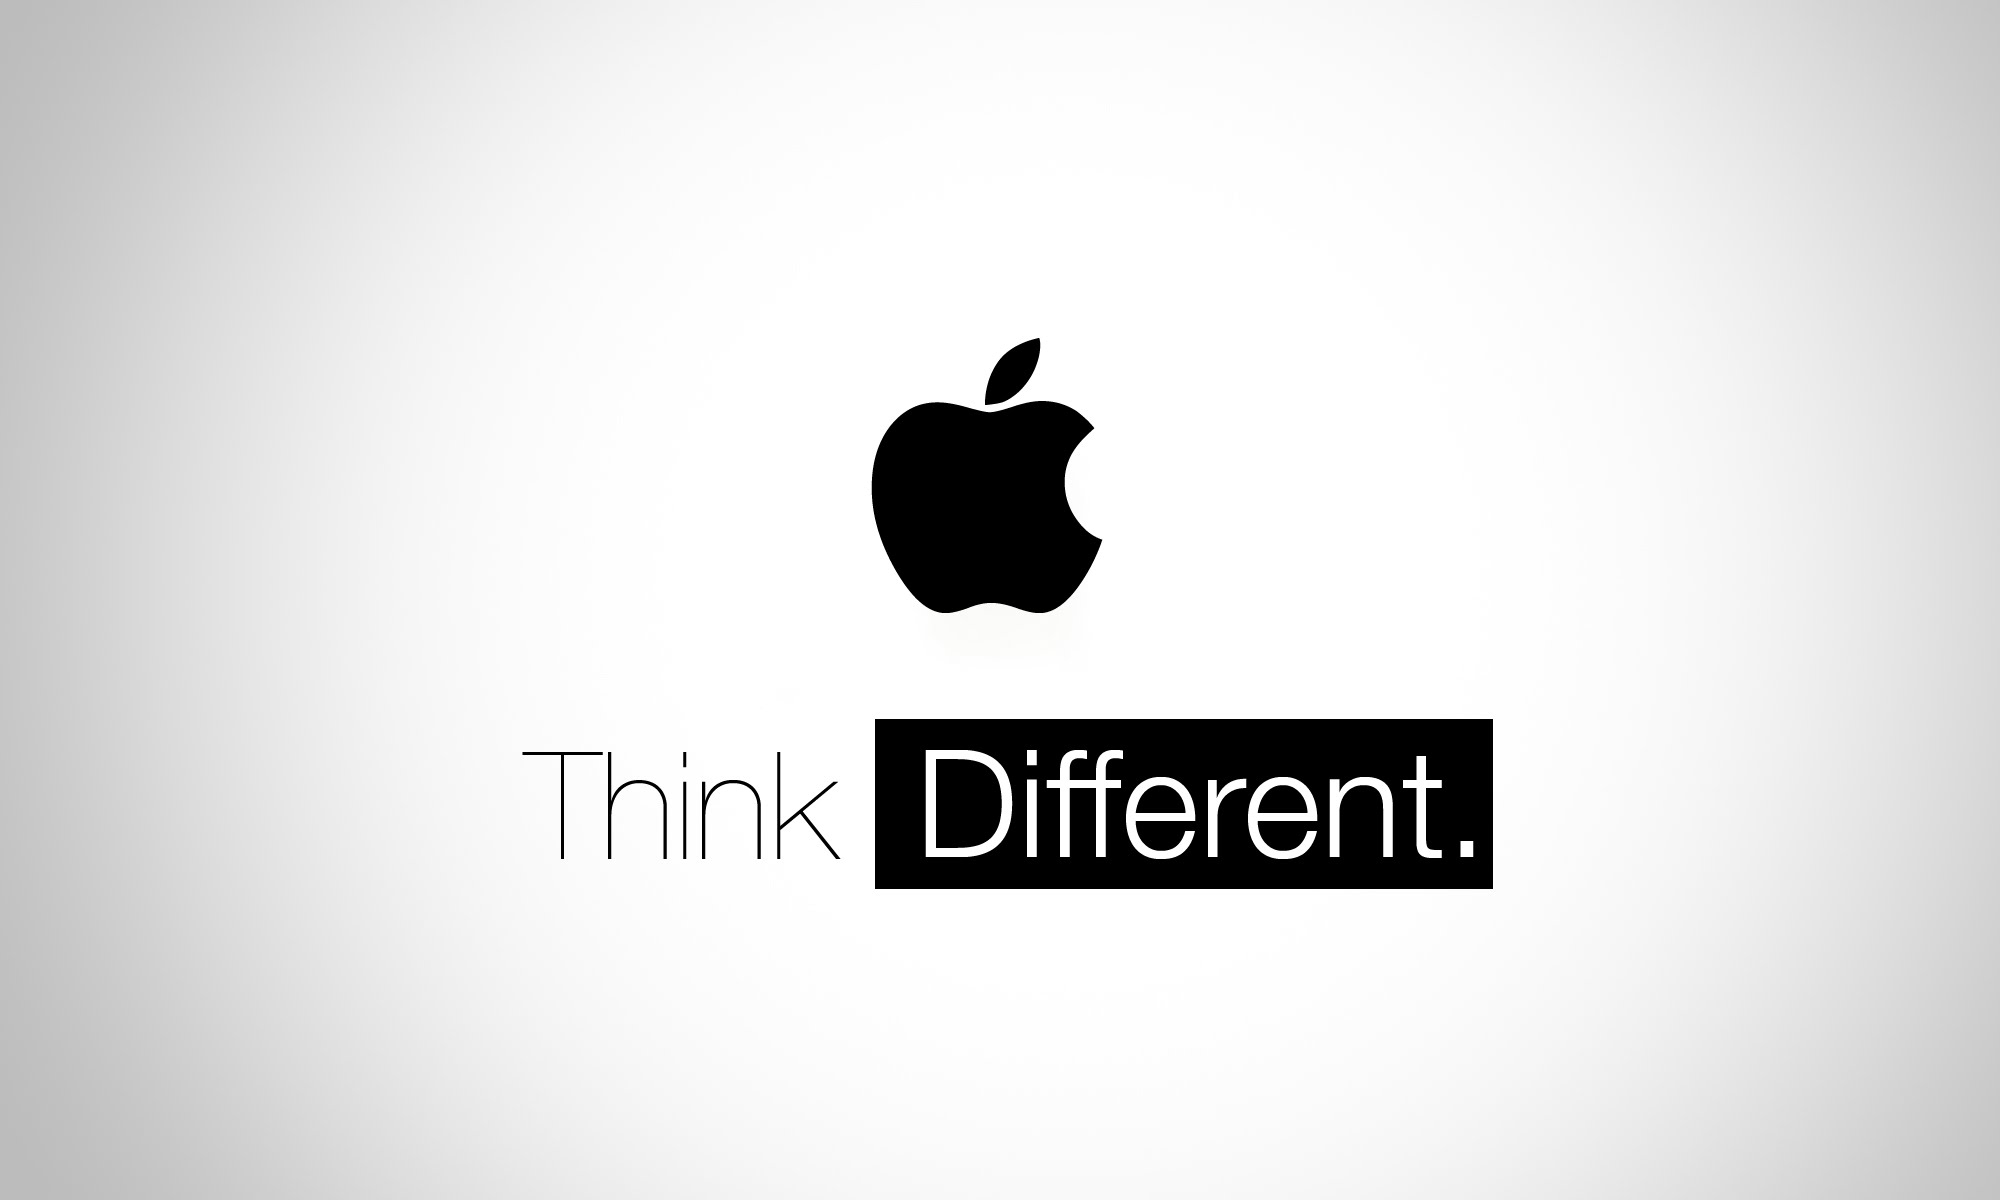 Think Different - Apple